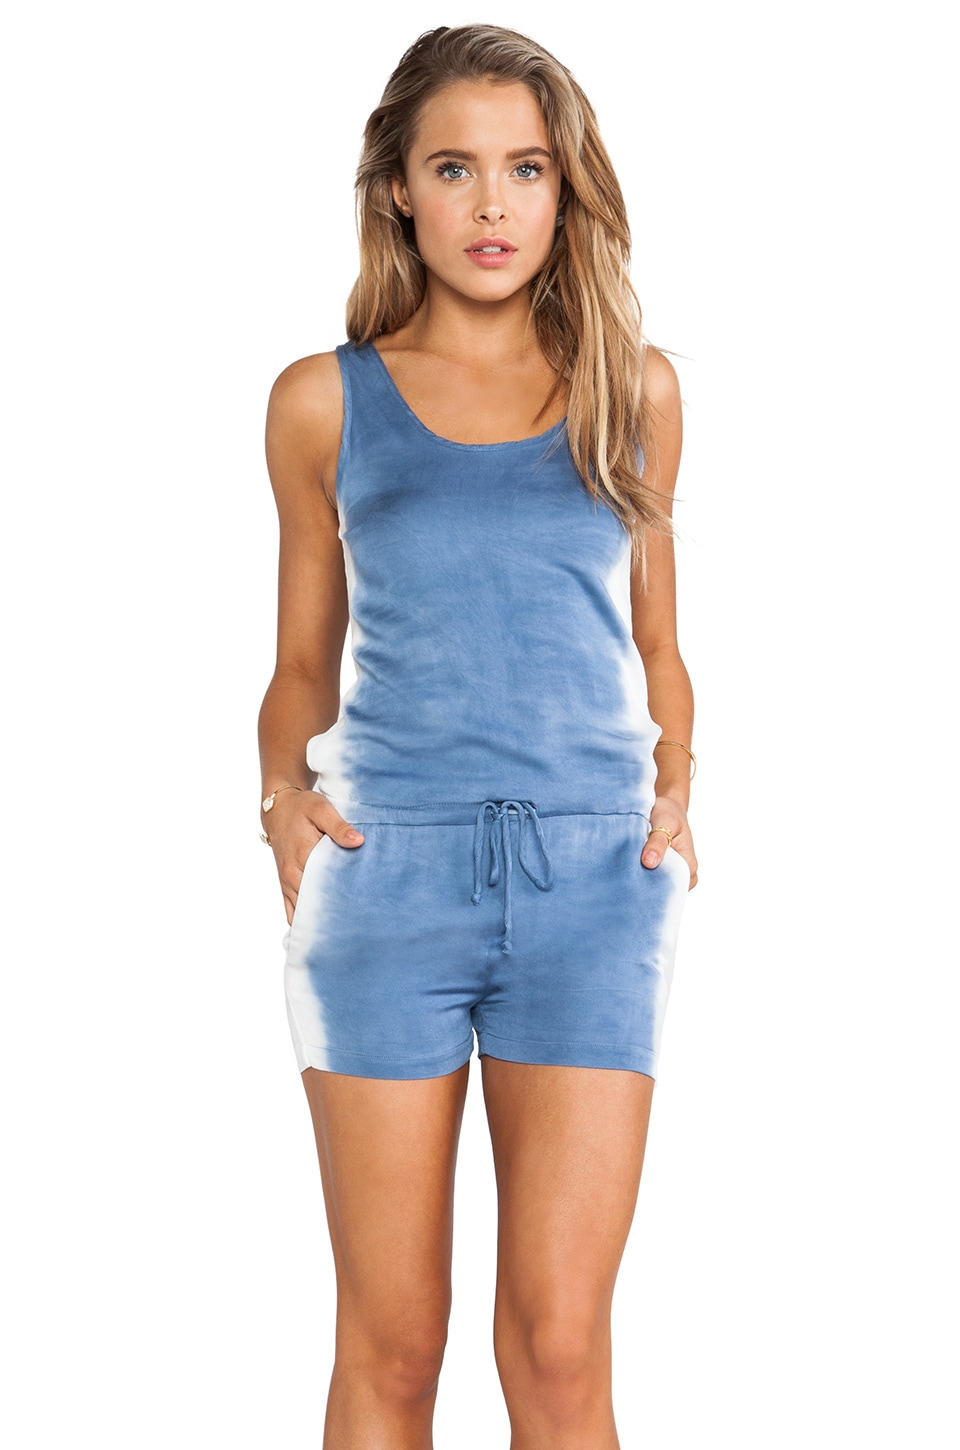 Kain Olympia Romper in White to Blue